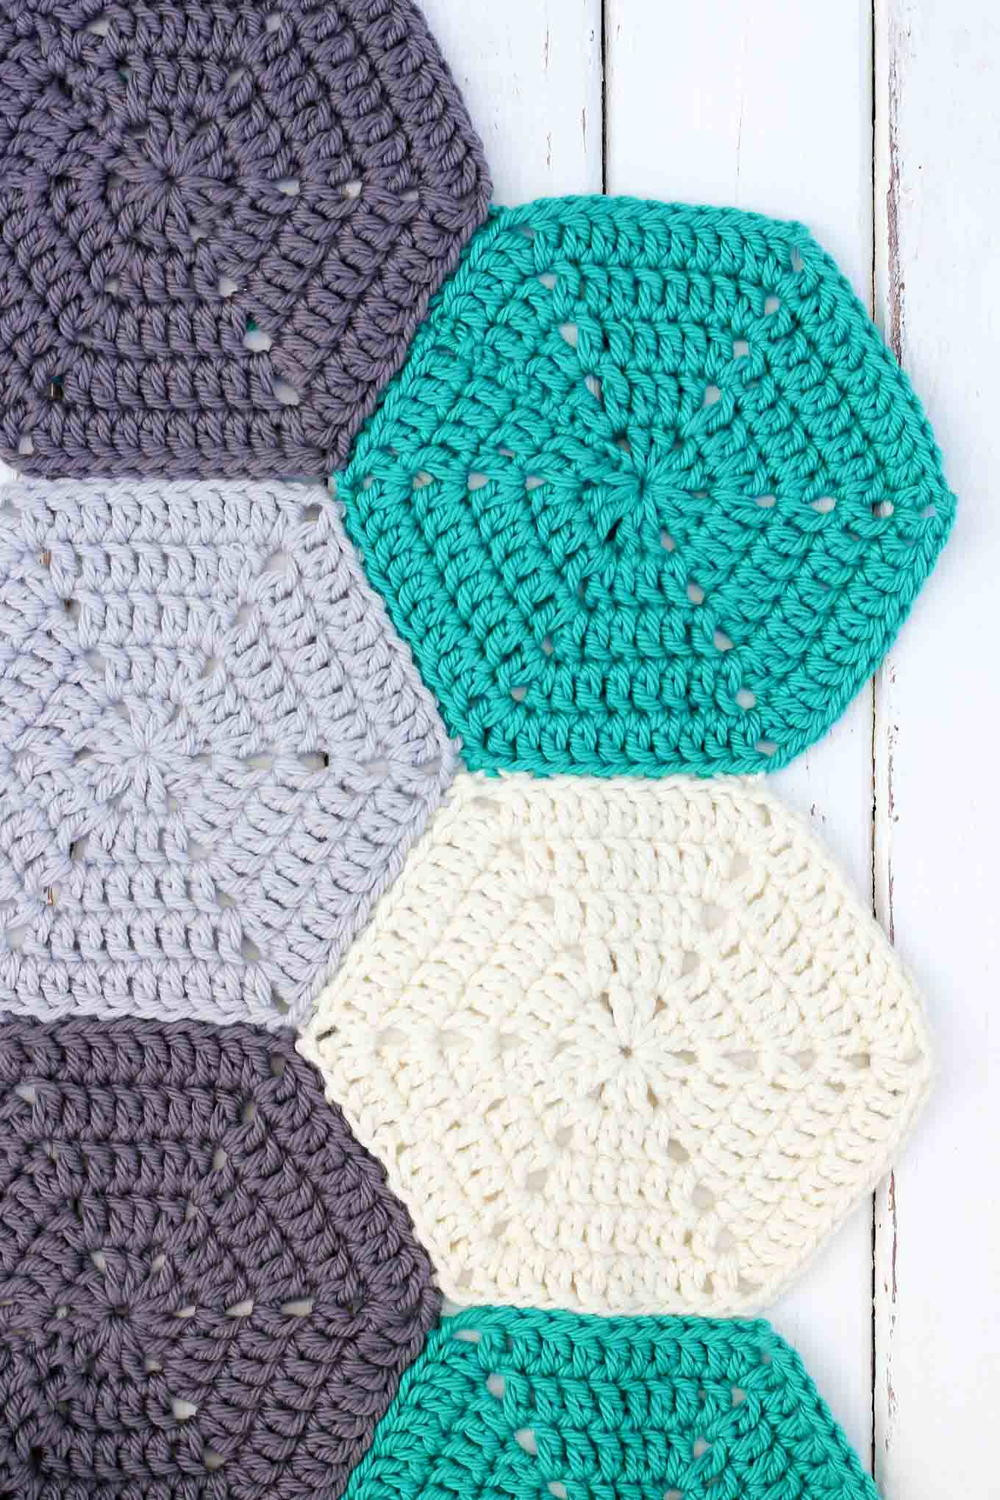 Crochet Projects Fresh How to Join Crochet Hexagons with Invisible Seams Of Unique 44 Pictures Crochet Projects